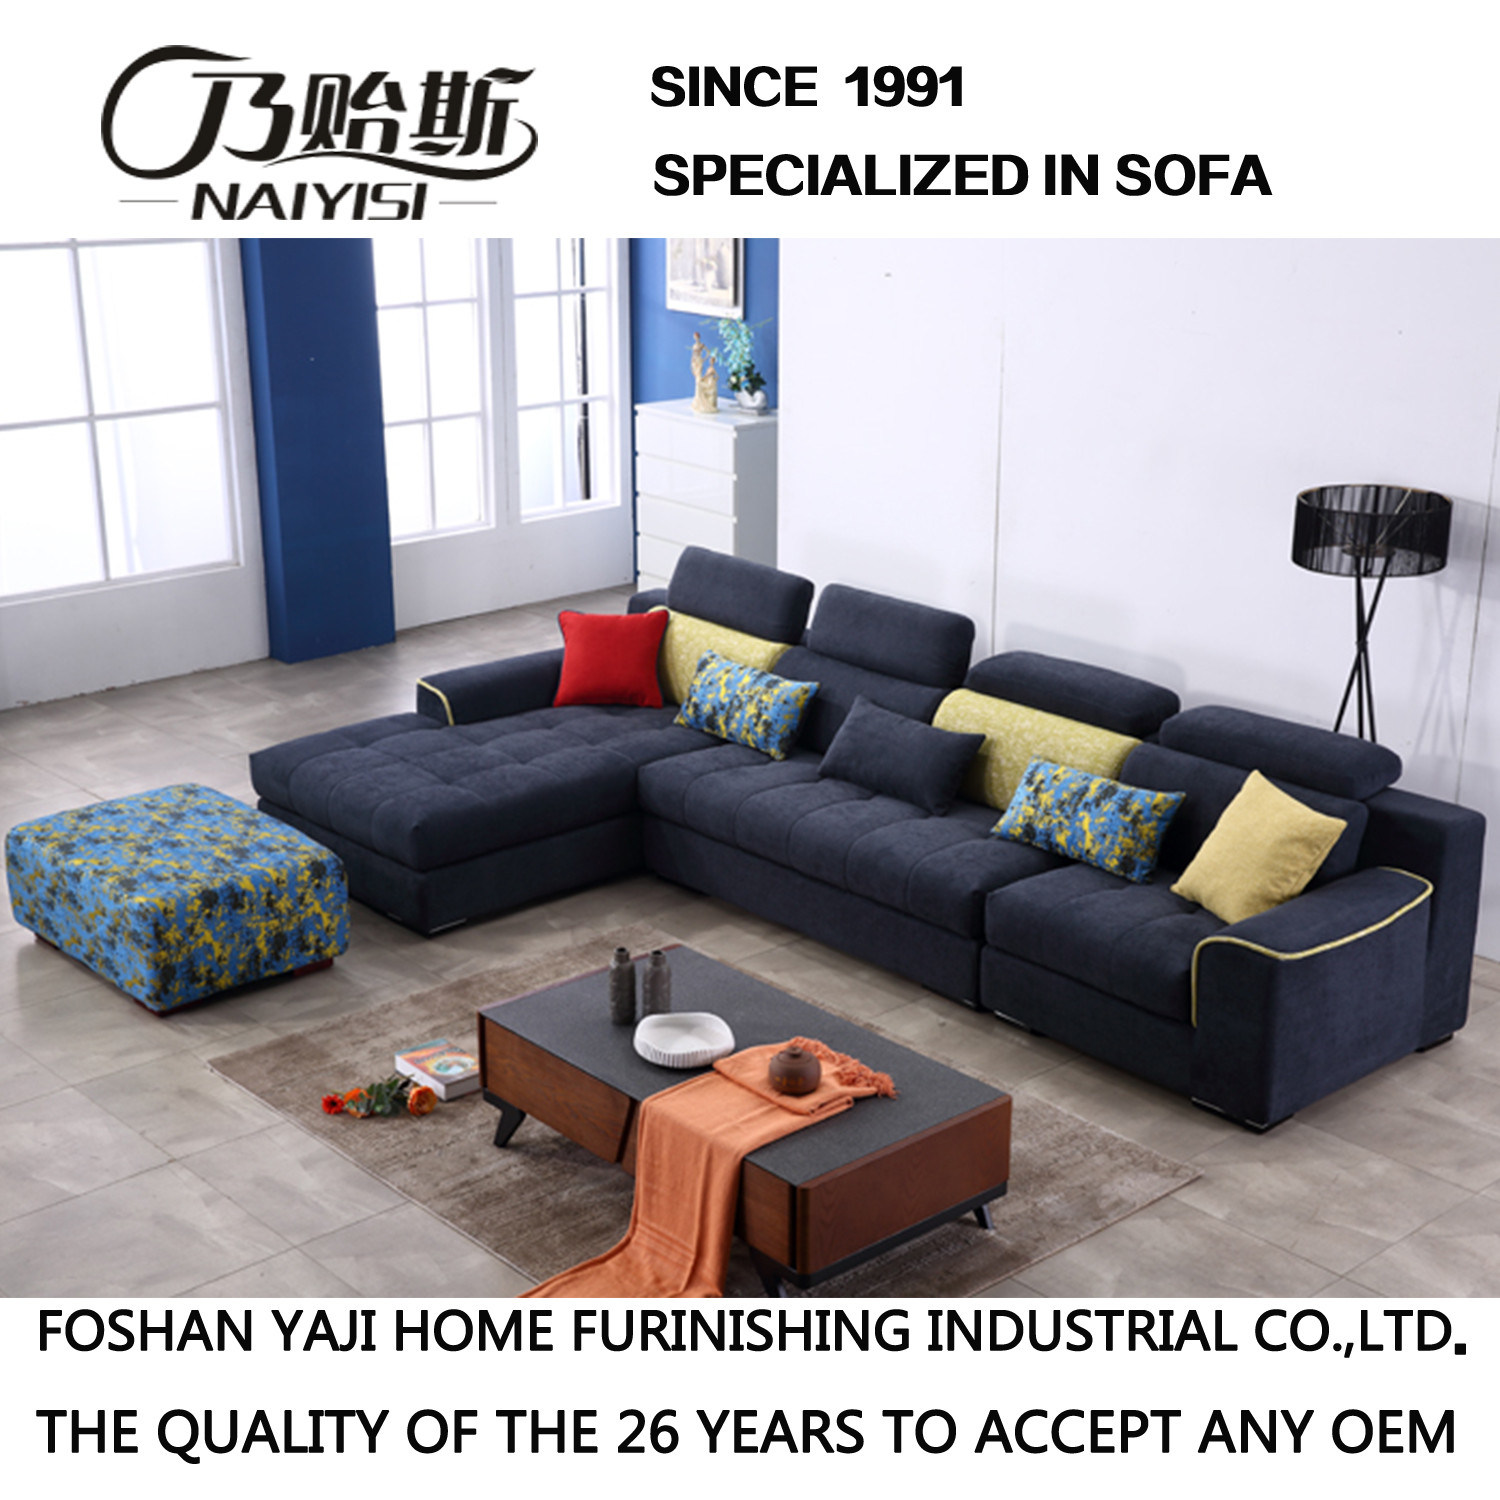 Modern Design Sectional Sofa with Flannel High Quality Fabric for Hotel Bed Room Furniture-Fb1146